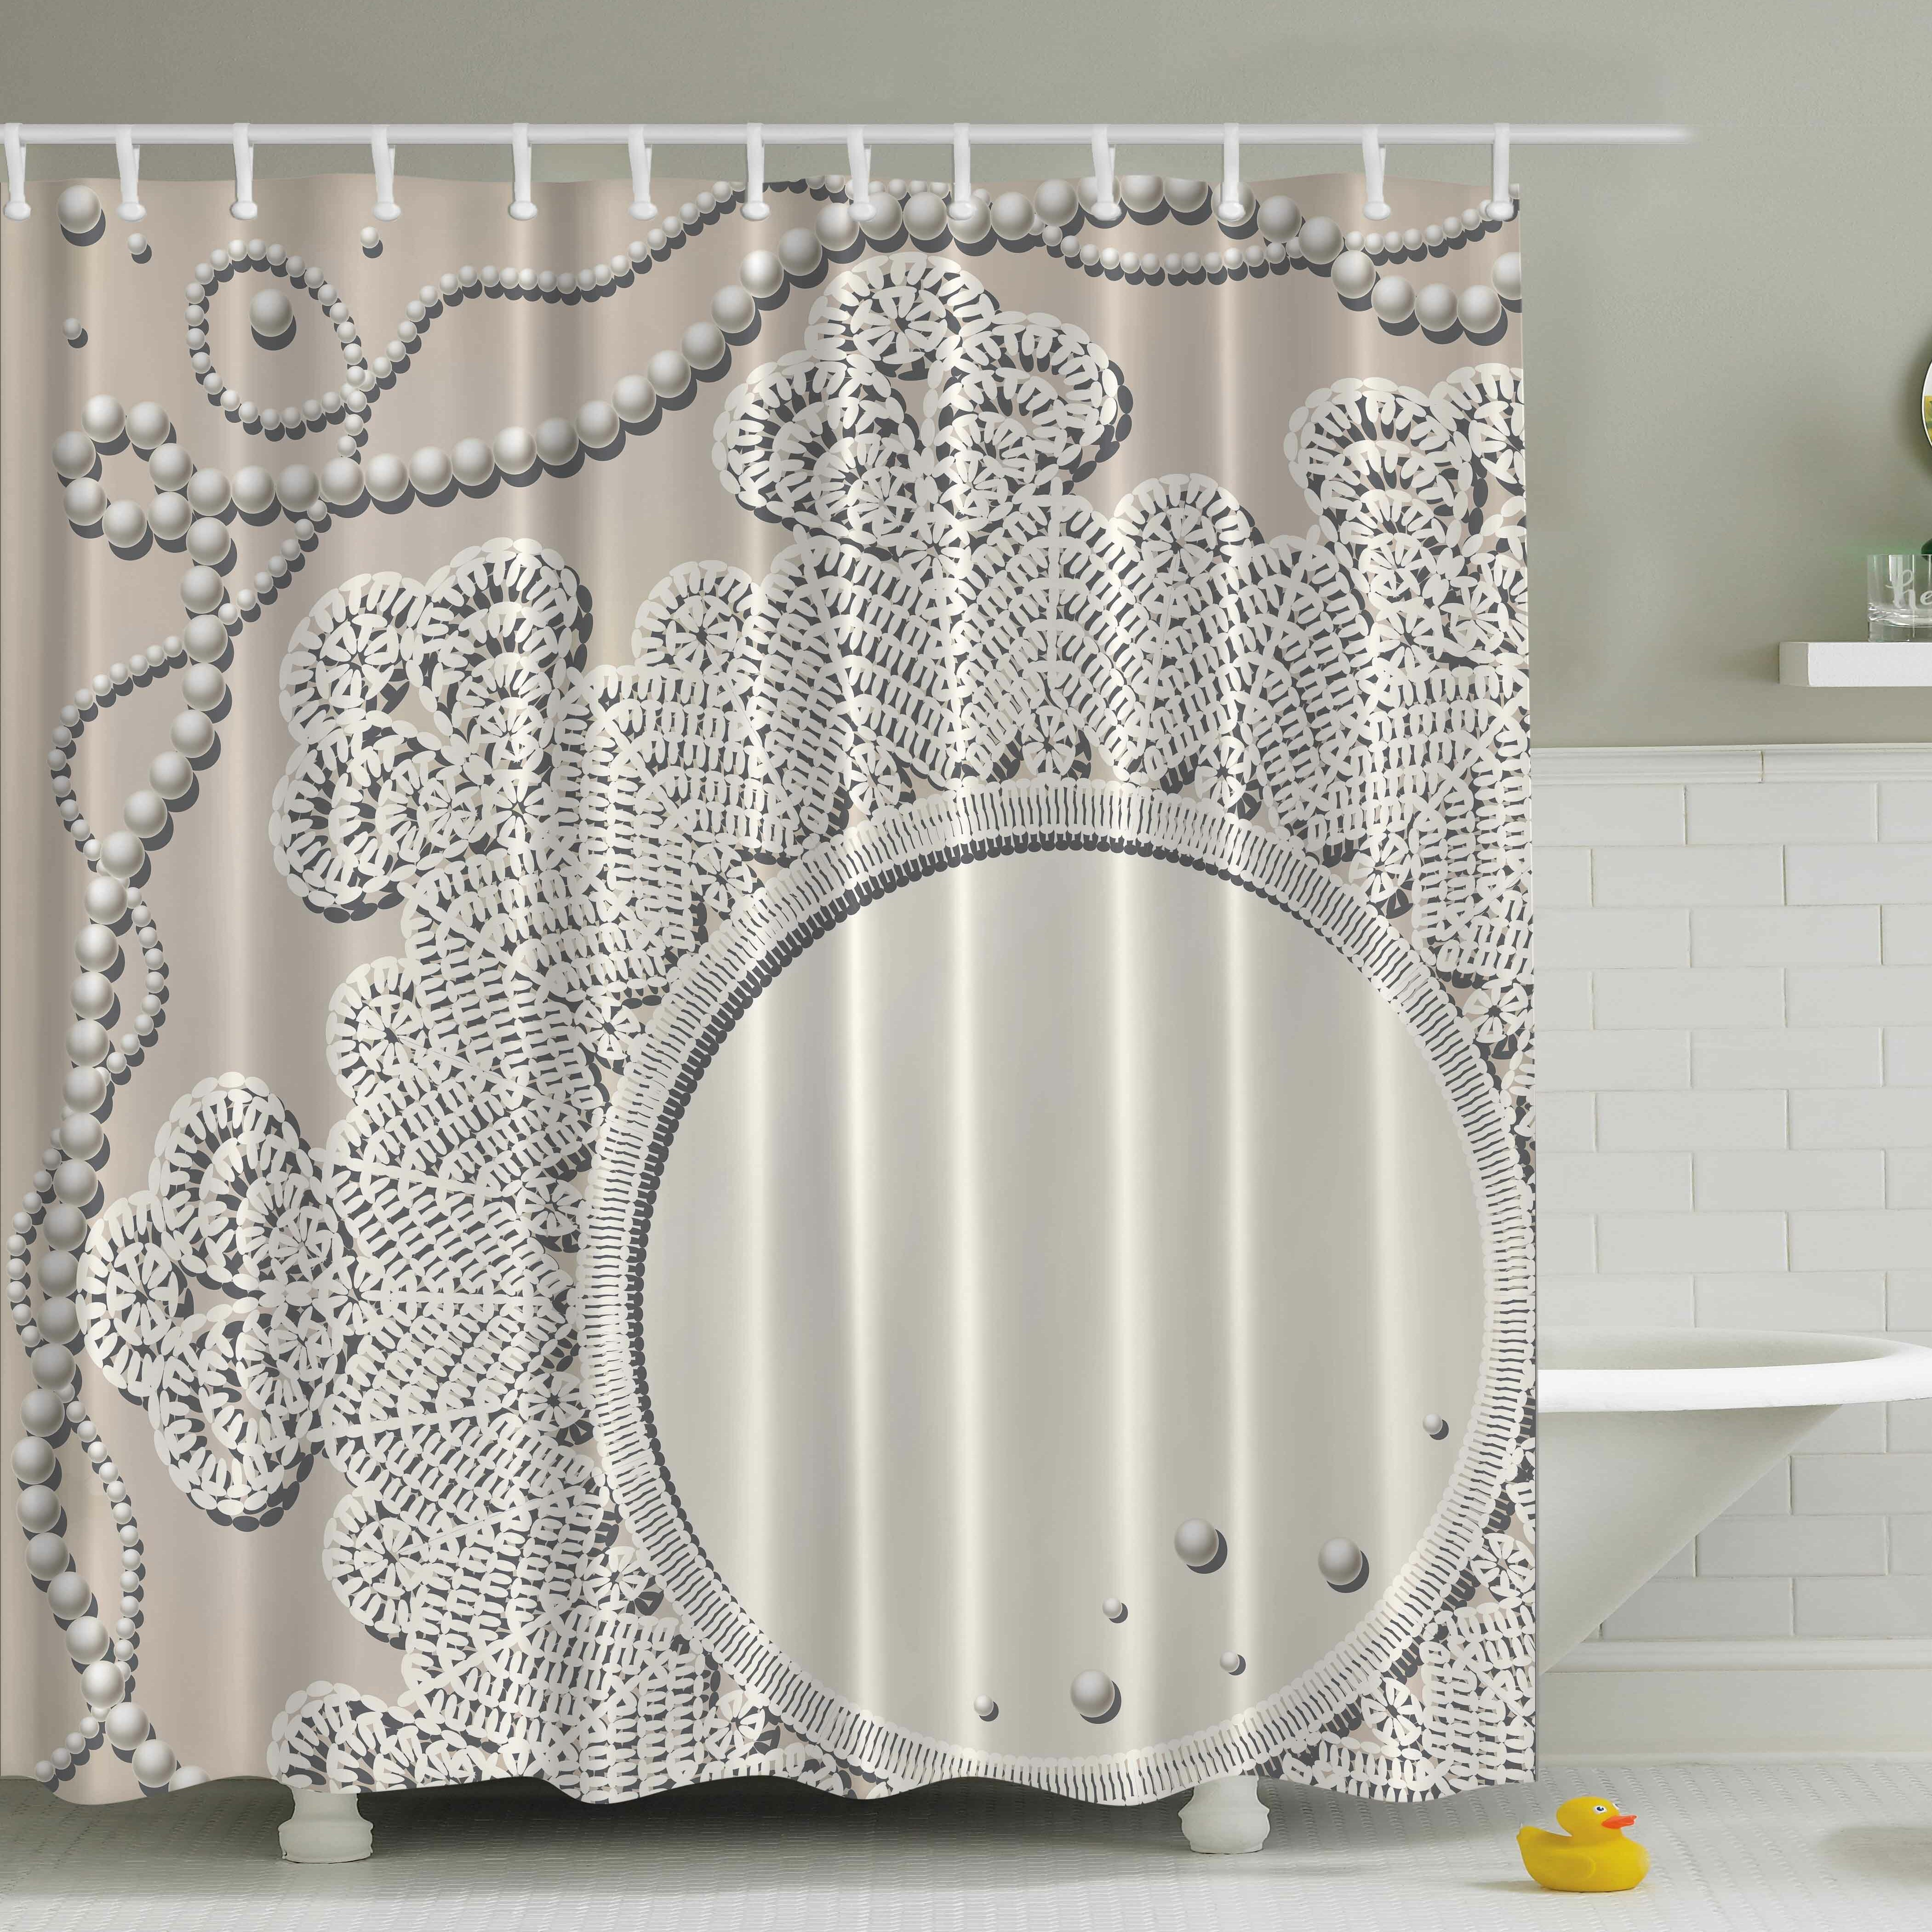 bathroom with ideas amazon elegant ruffle for curtains way enchanting wayfair shower curtain white allium decoration on ruffled in one